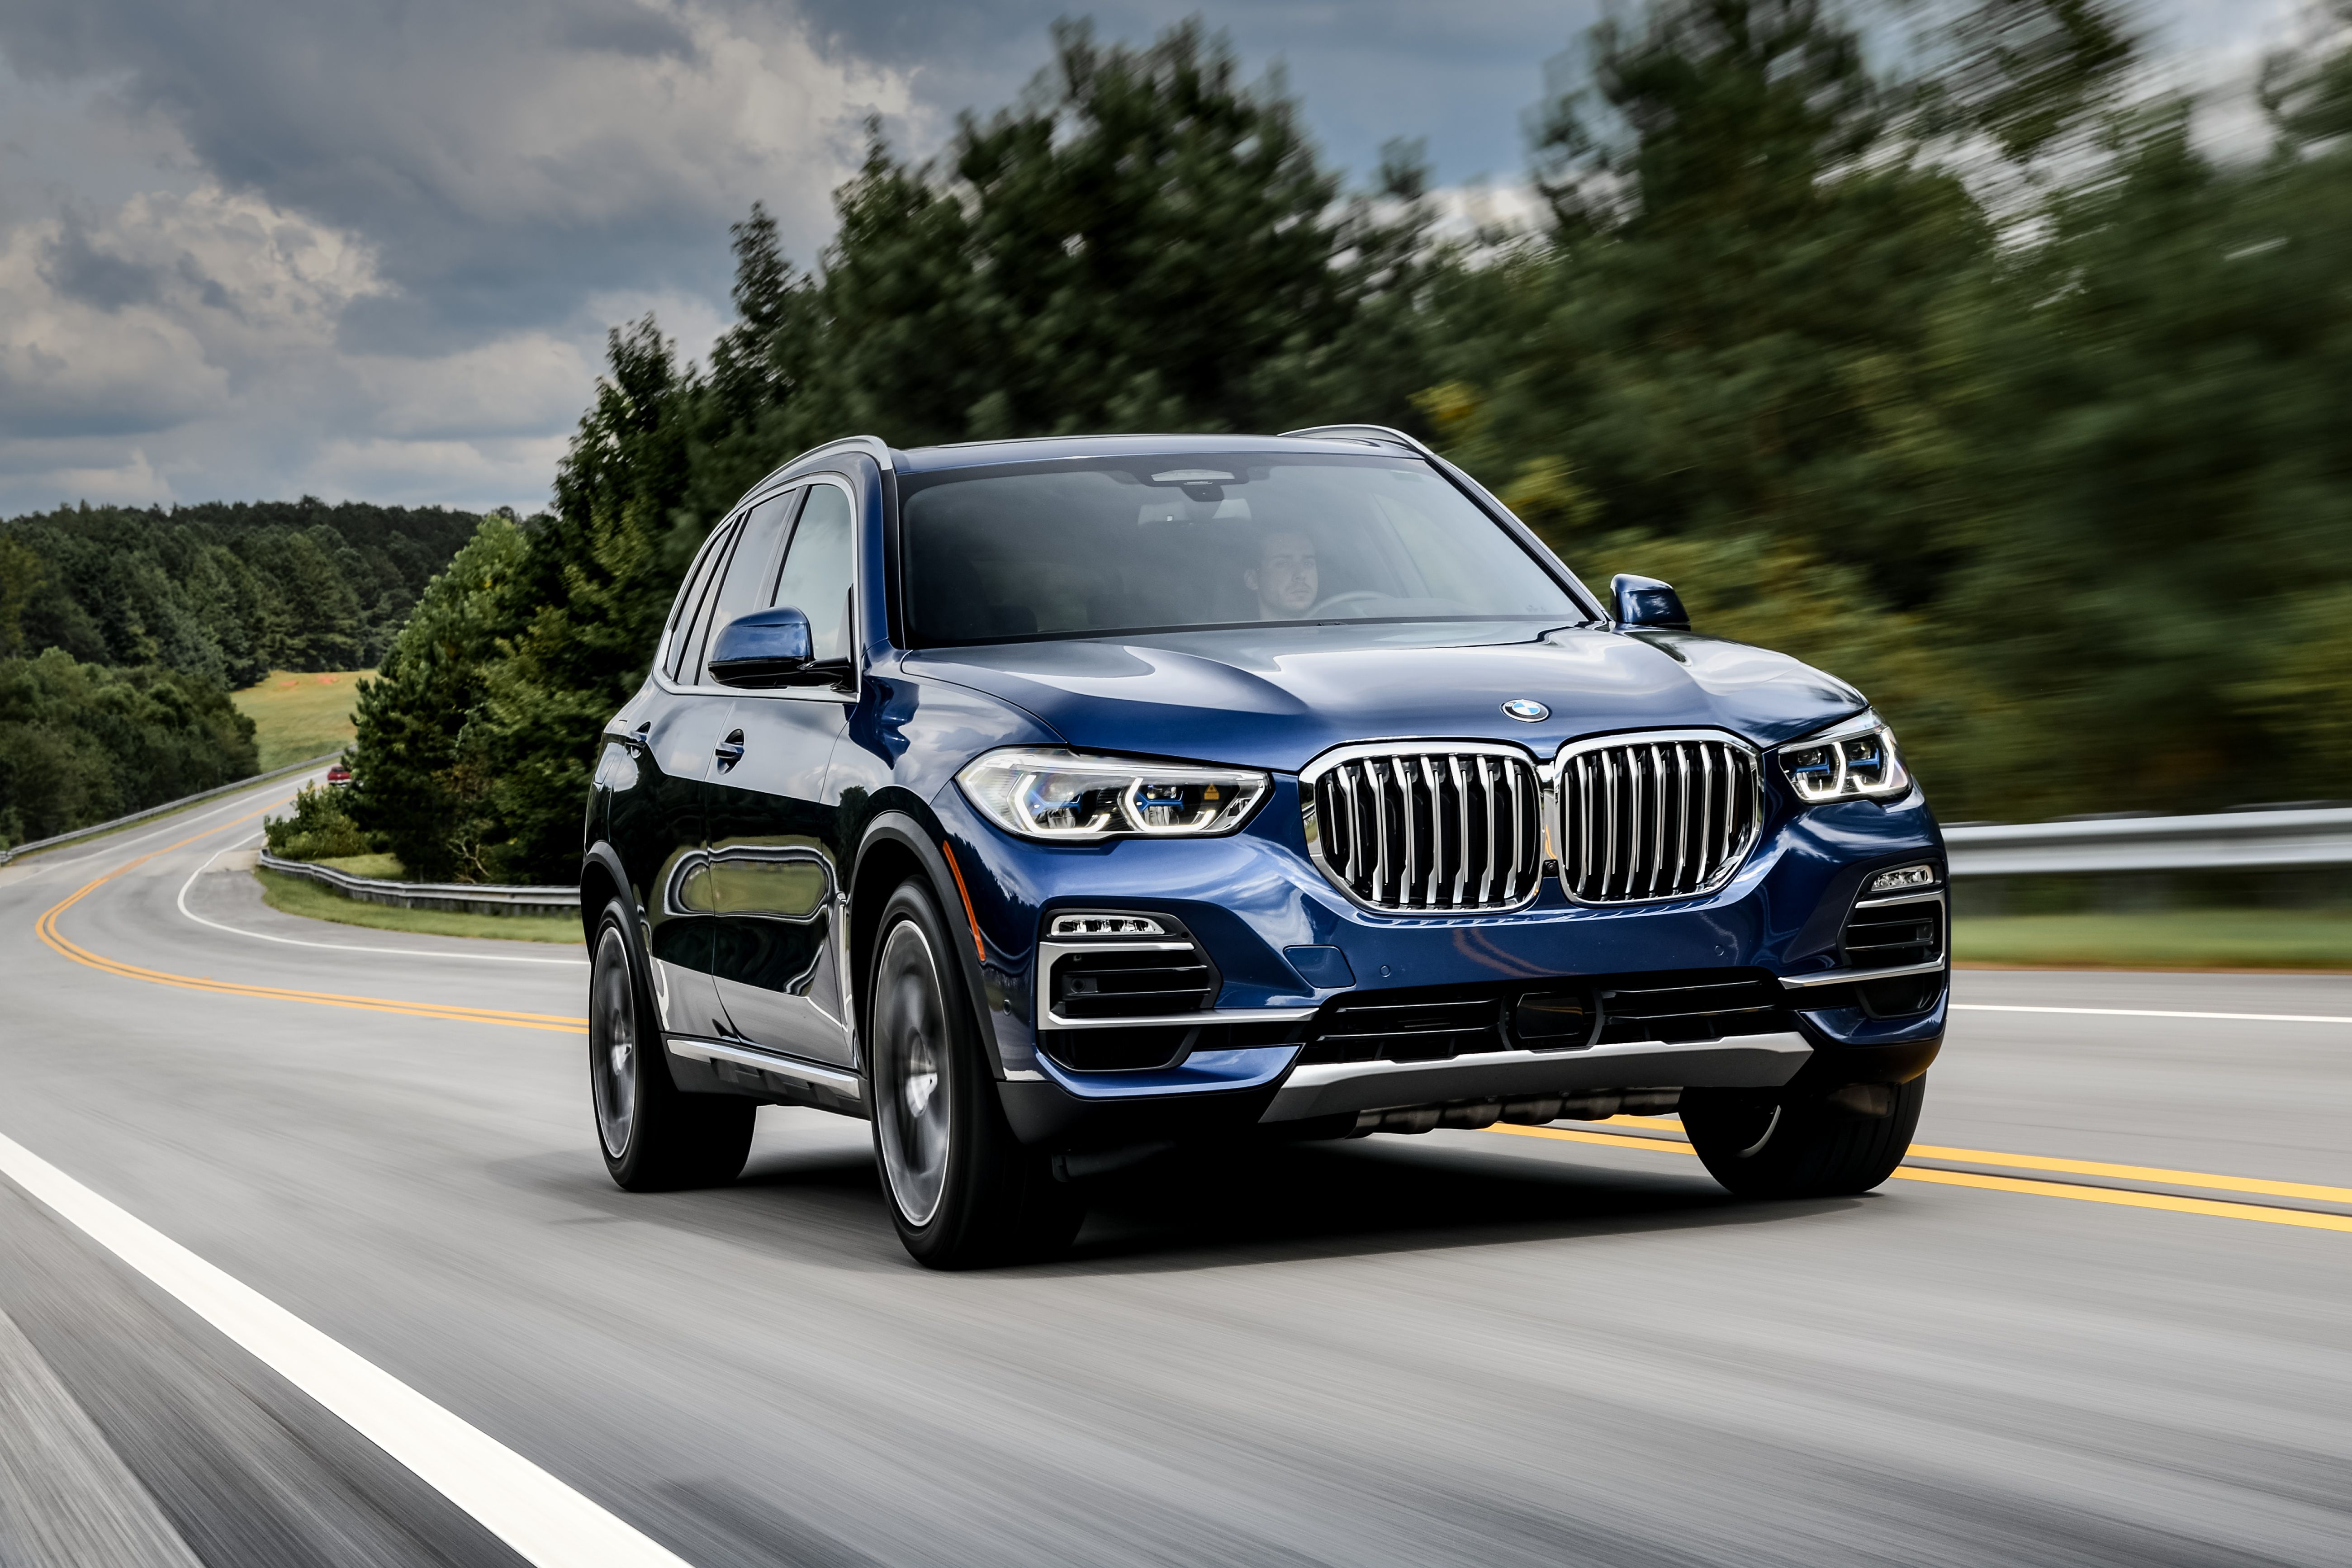 Bmw G05 X5 Xdrive40i Sav Mperformance Mpackage Xline Sheerdrivingpleasure Badass Monster Muscle Outdoor Offroad Provocativeey Bmw New Suv Bmw X5